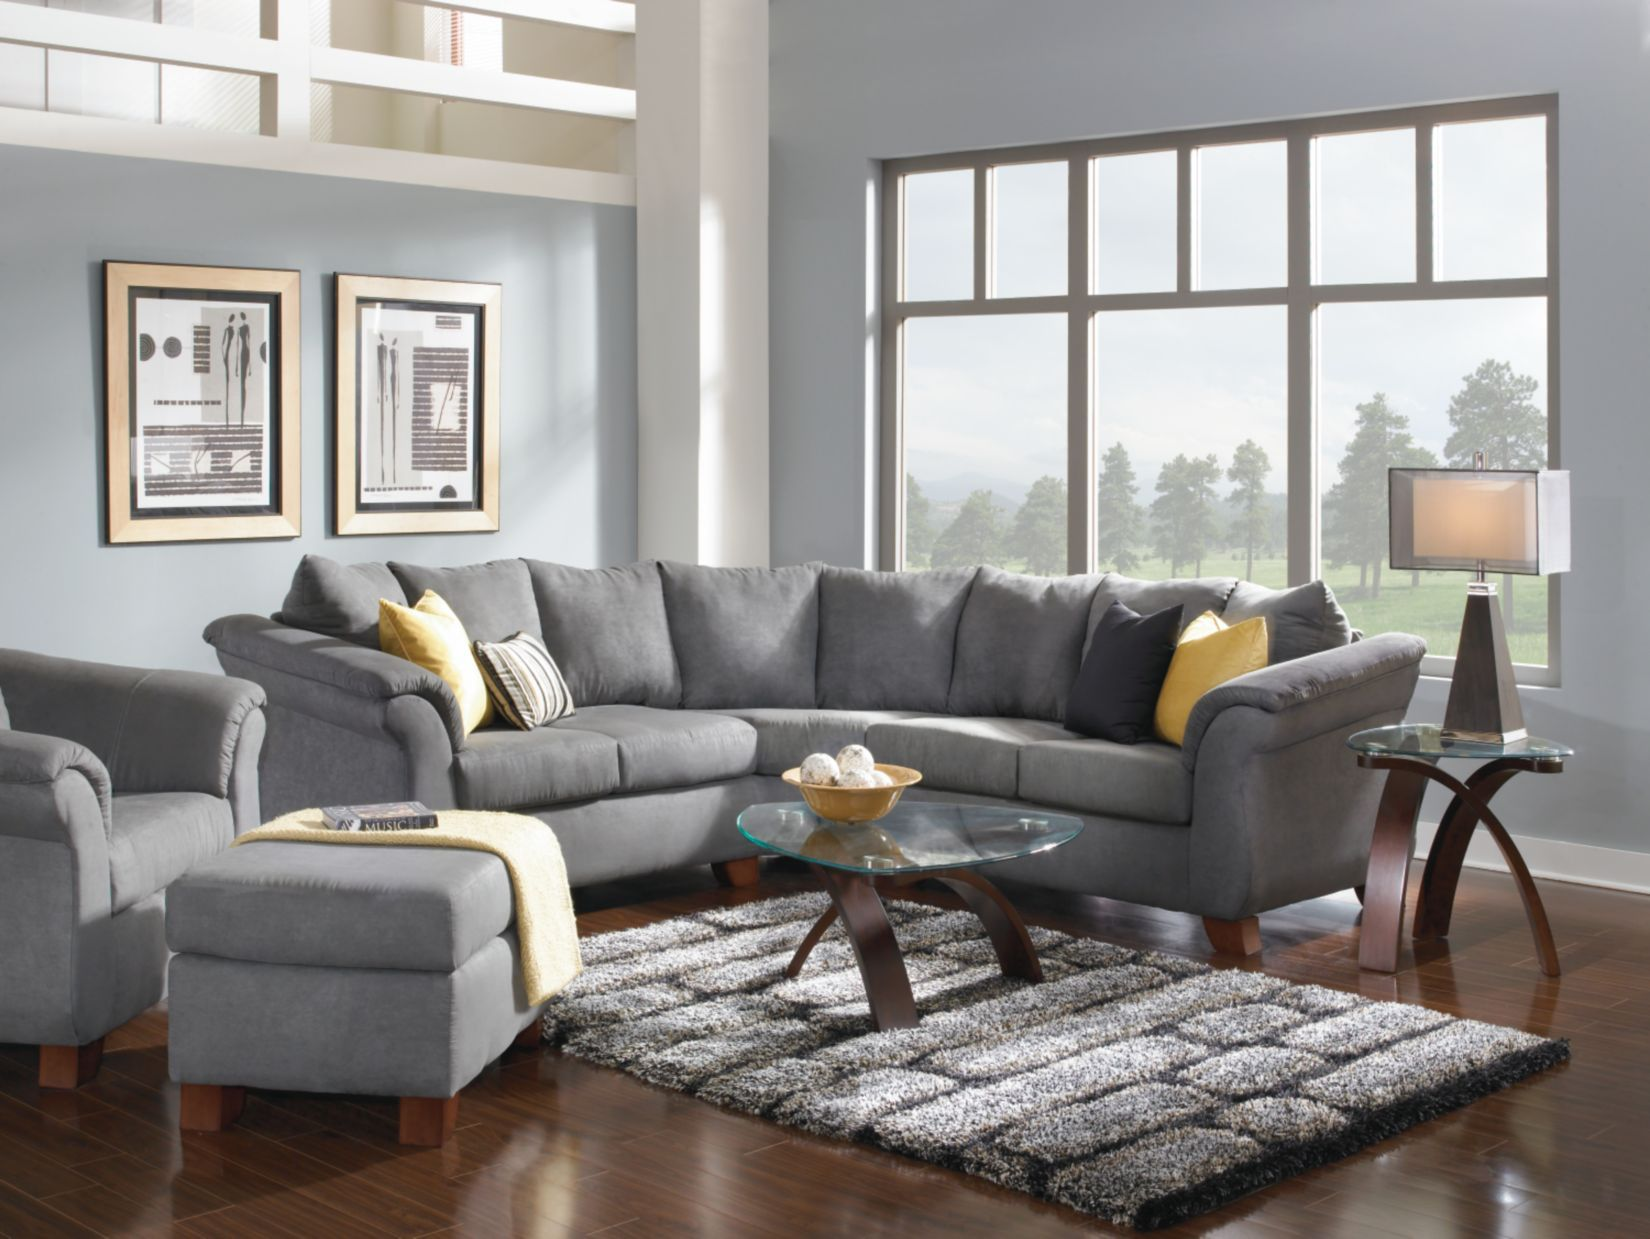 Adrian Graphite Sectional Couch Furniture Pinterest Sectional Couches Graphite And City